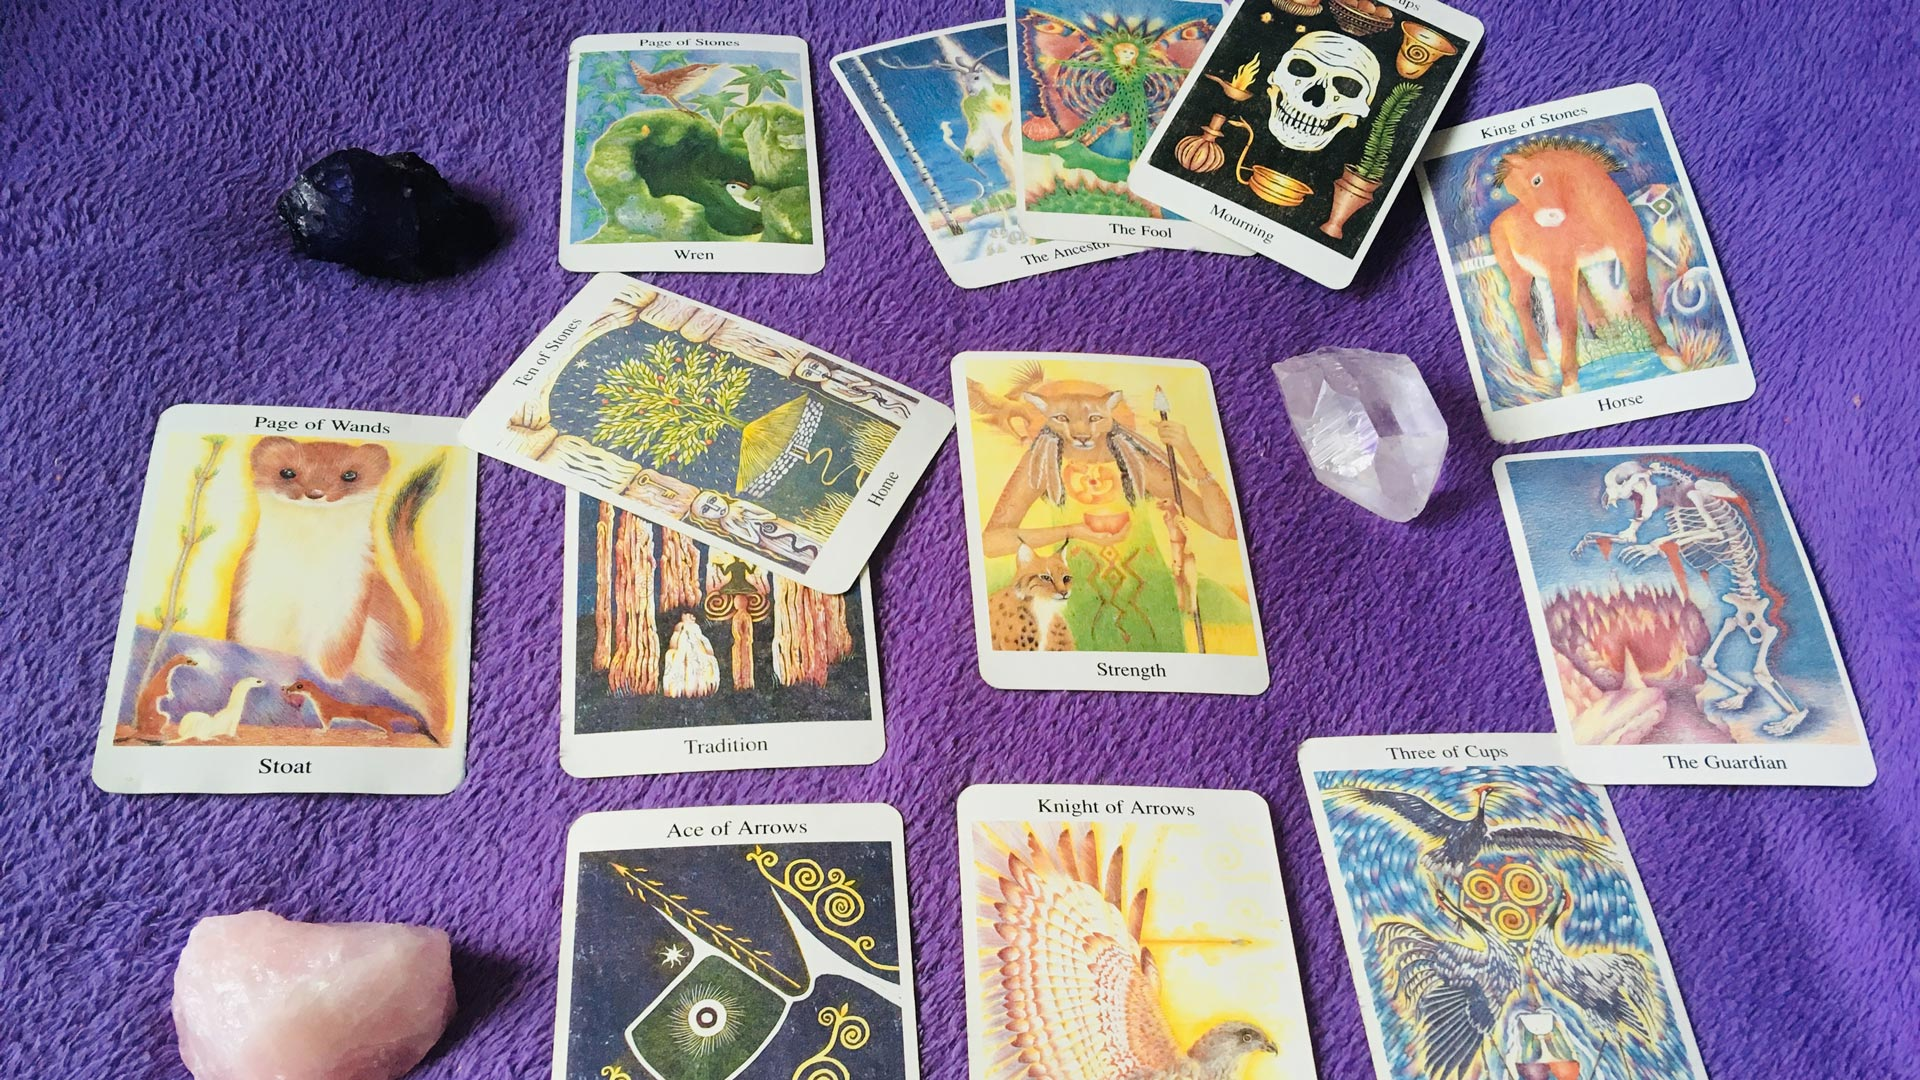 Tarot card reading being carried out